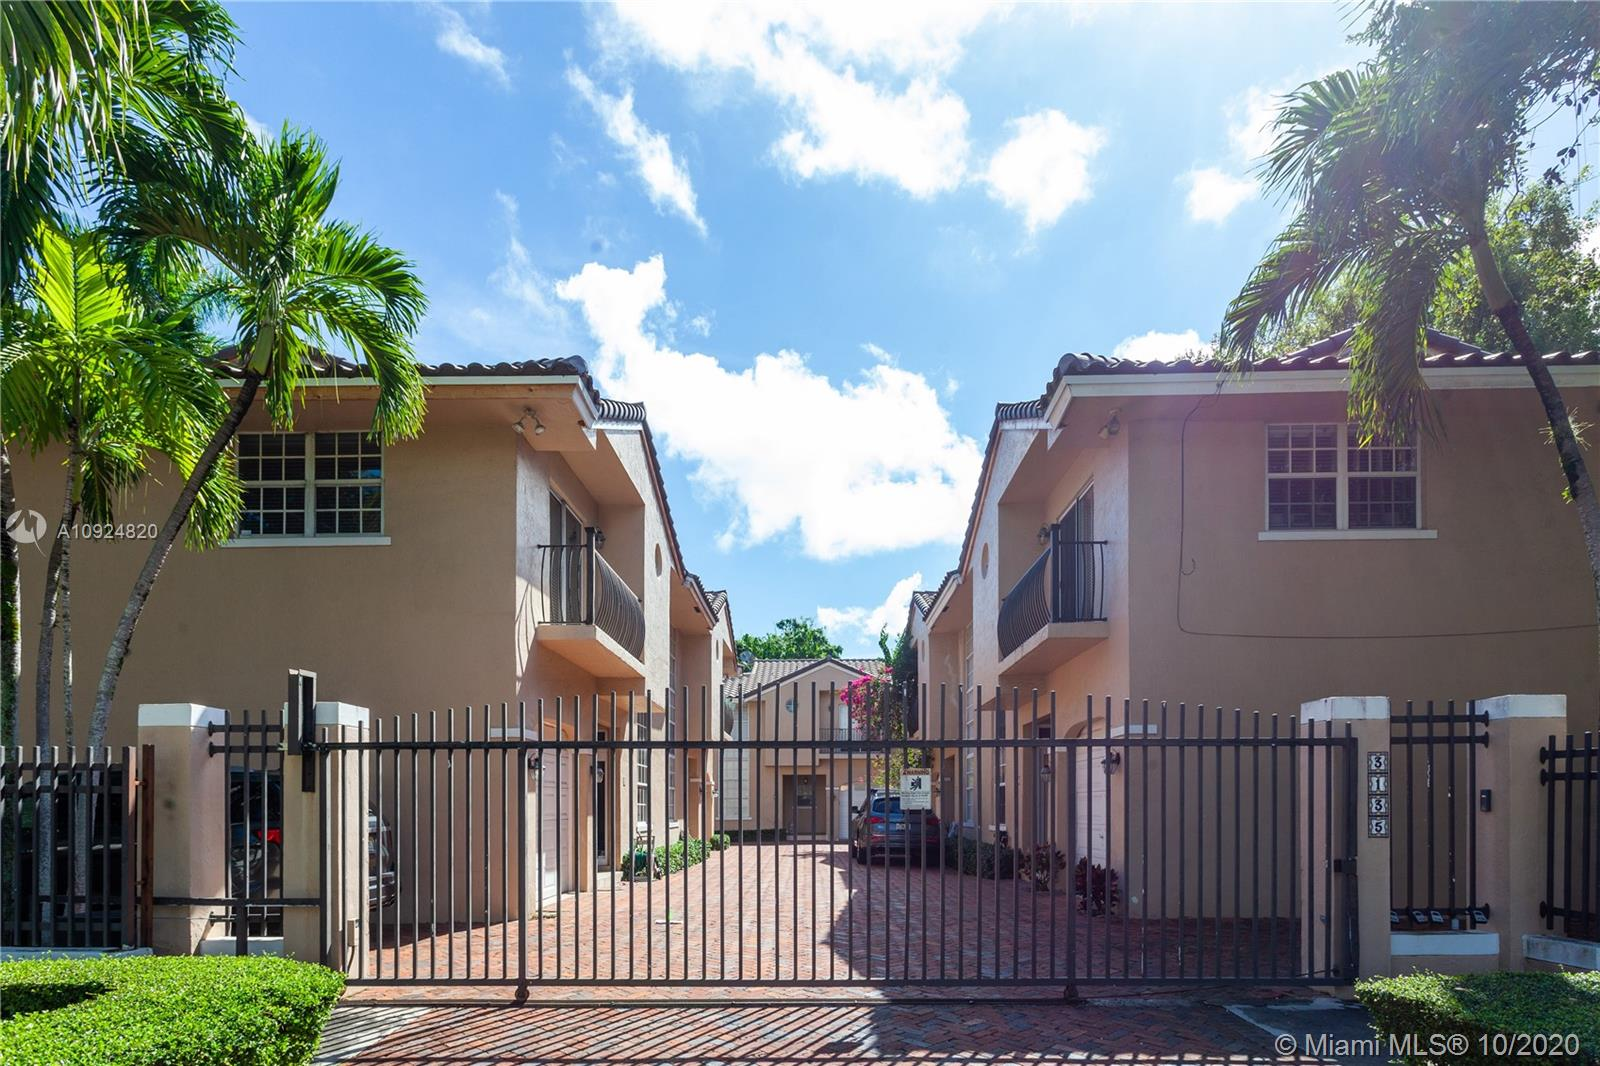 Your chance to live on one of the most beautiful streets in Coconut Grove! Be a part of a wonderful community of 6 villas.  Just steps to the new CocoWalk that's opening very soon, as well as, many restaurants , shops, boutiques and schools! This Newly renovated townhouse has 3 beds/2.5 baths.  The garage has been converted which is perfect for a playroom, office or 4th room. 1430 Sq ft. 